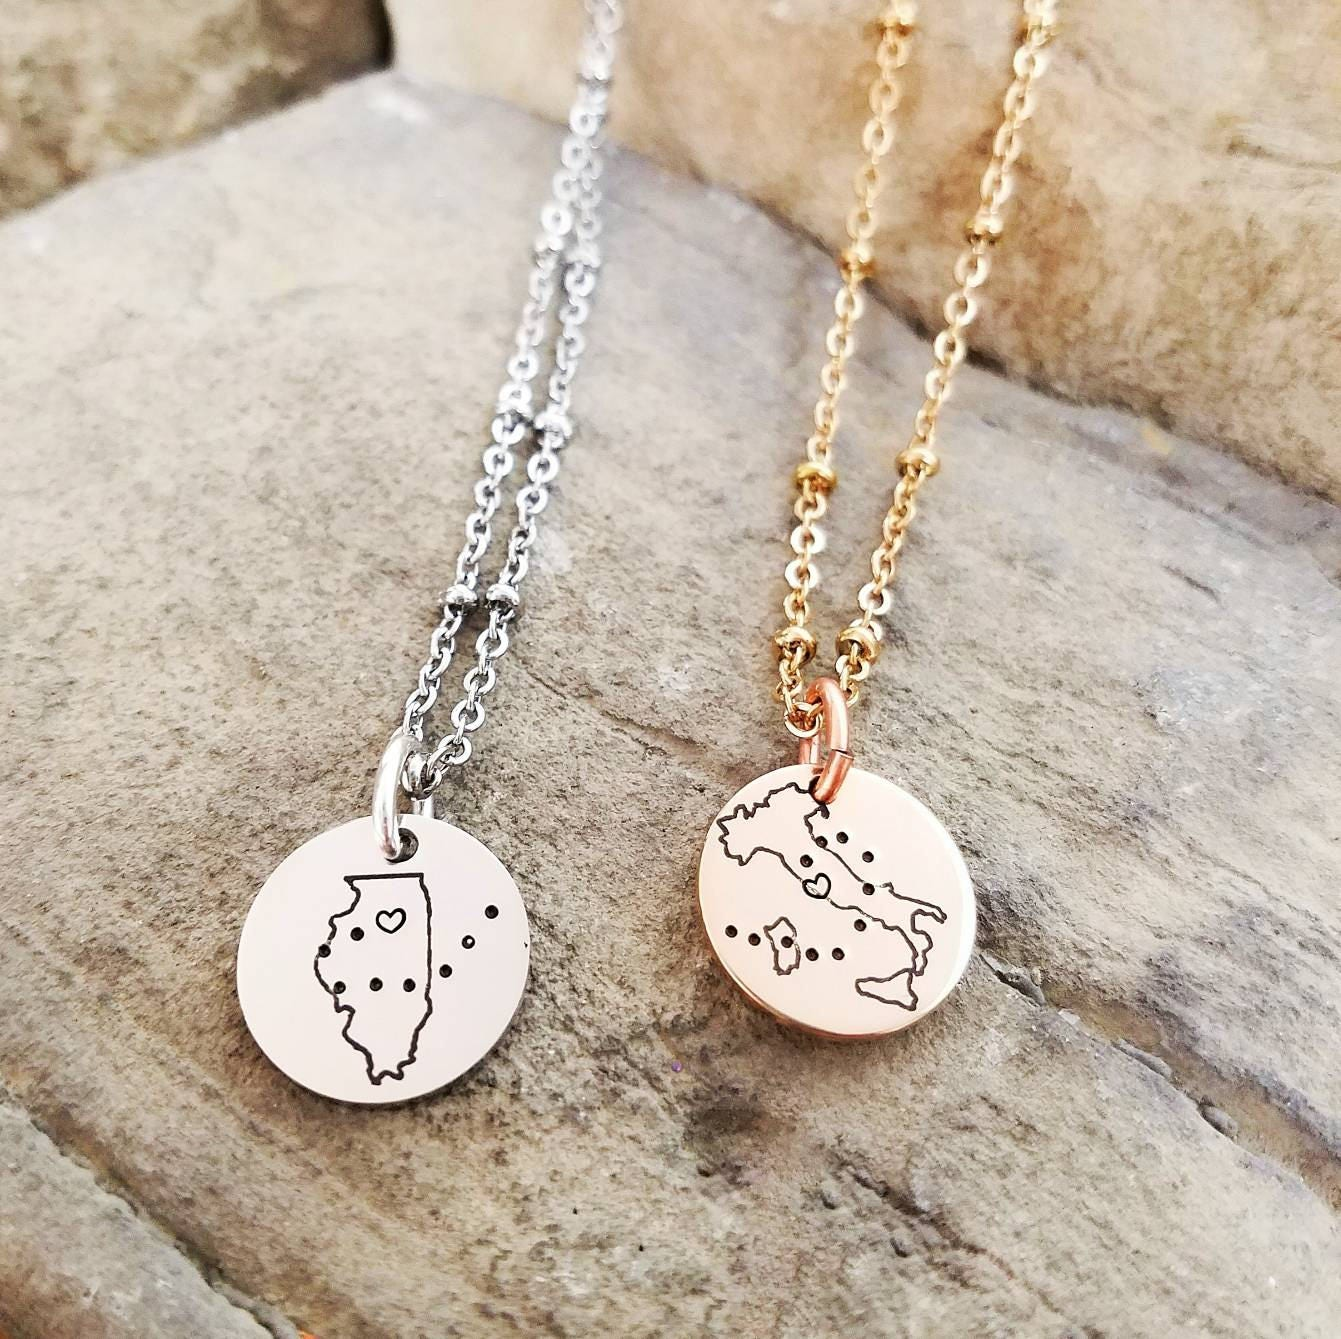 best friend necklaces long distance friendship jewelry best